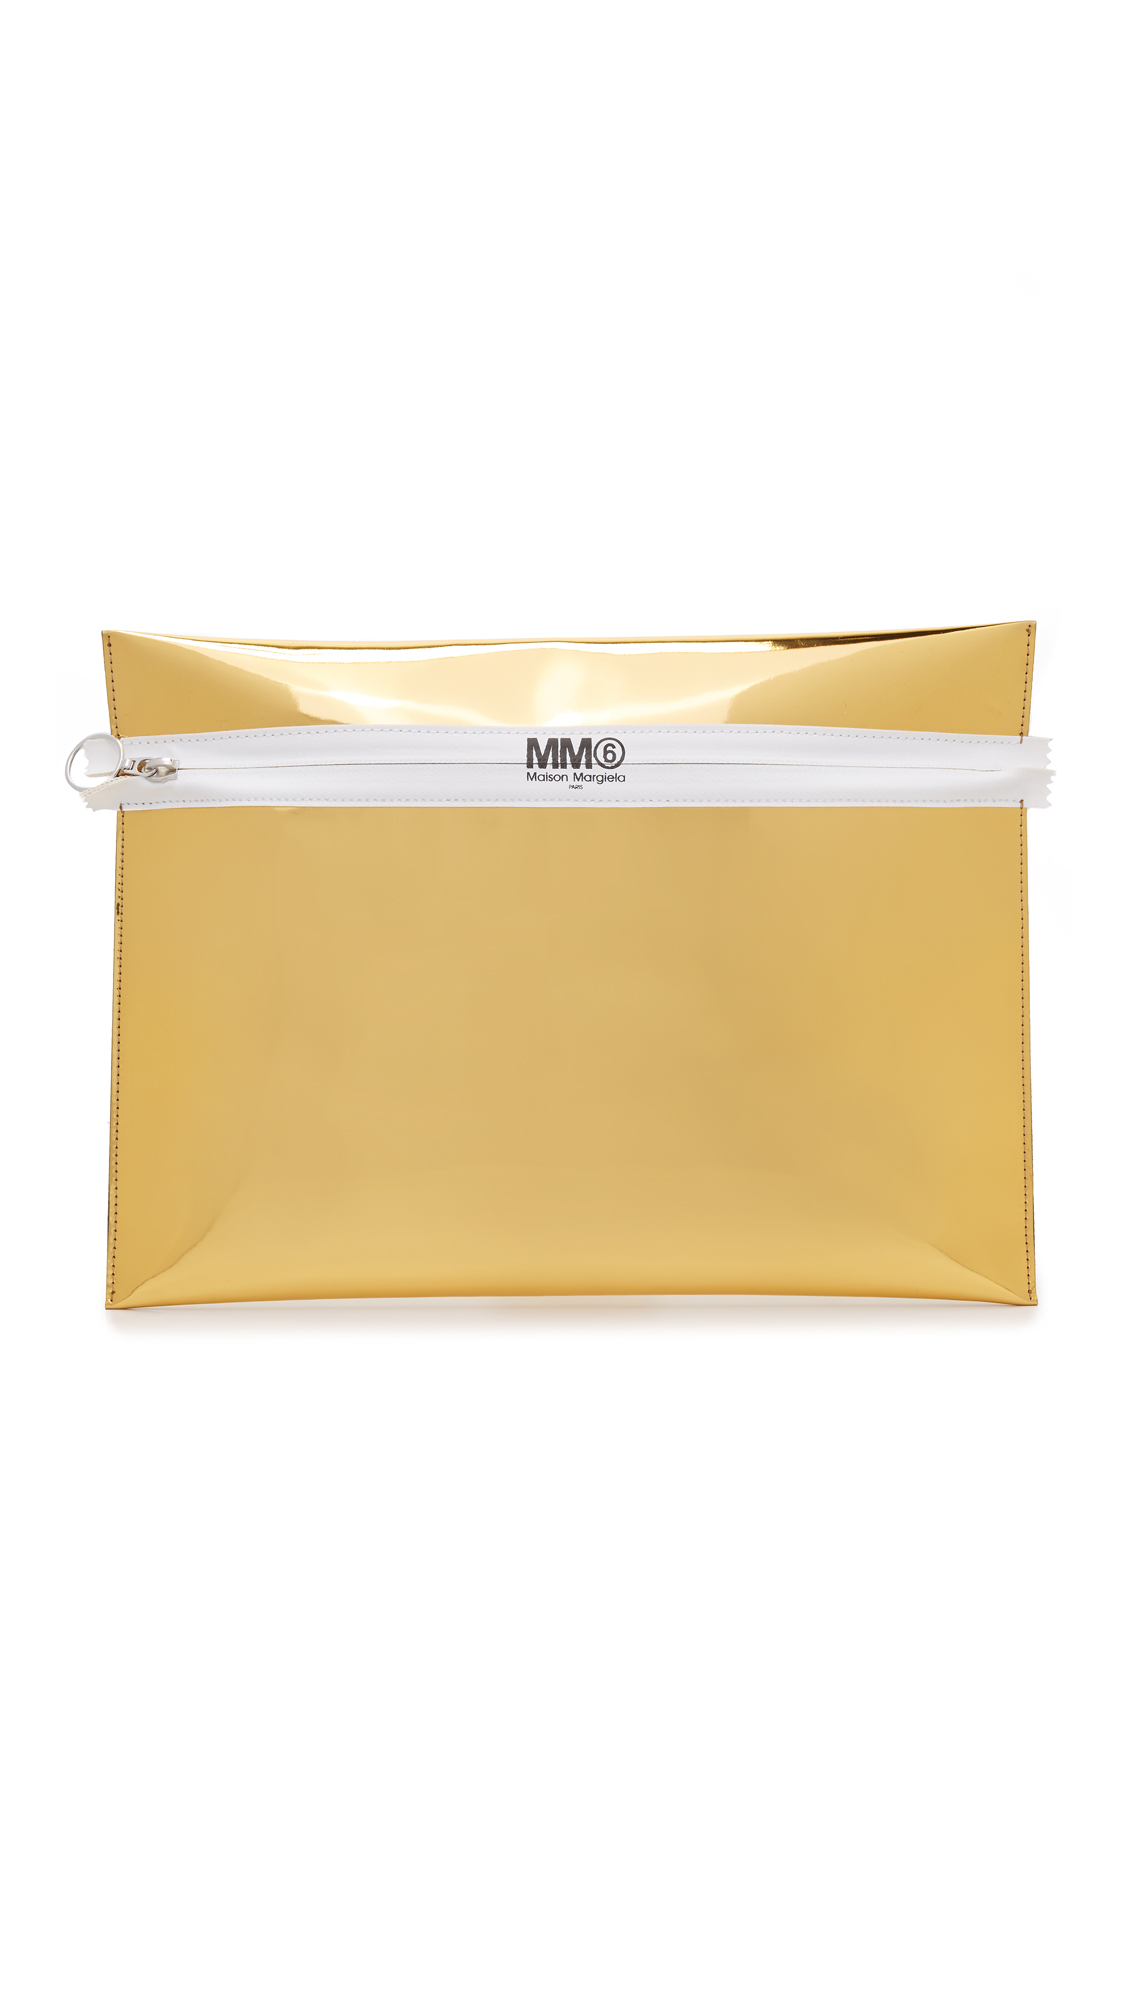 Mirrored faux leather brings a glamorous touch to this MM6 clutch. The coated front zip has a logo stamp, and opens to a lined interior. Fabric: Faux leather. Weight: 8oz / 0.23kg. Made in Italy. Measurements Height: 10.25